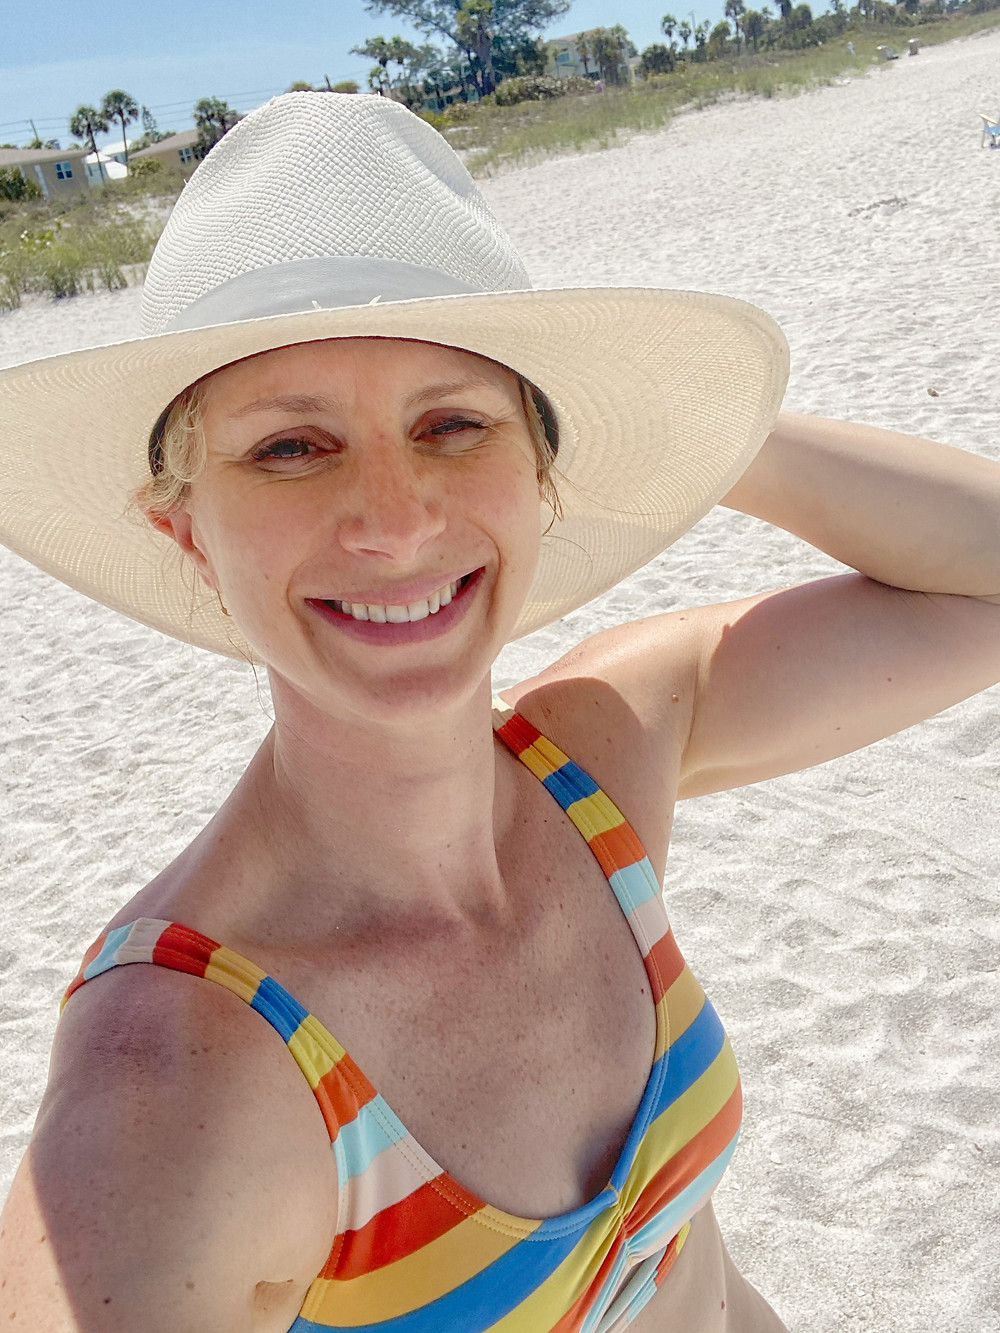 Nora Shank Nutrition talks about bad body image days